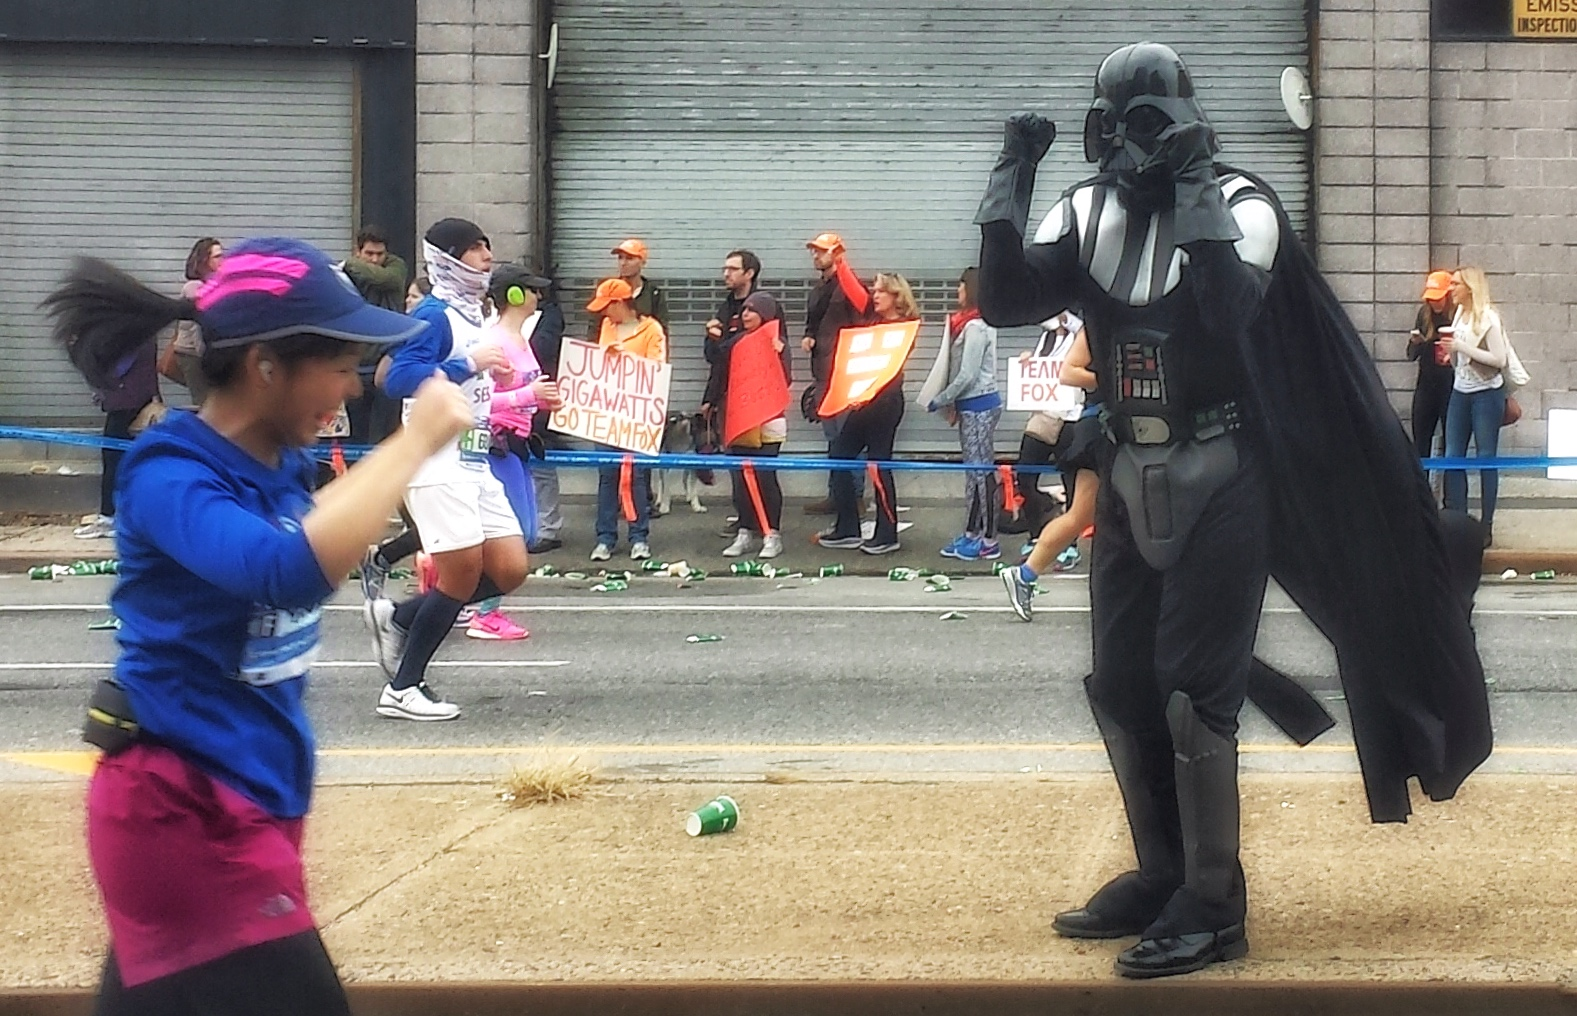 Darth Vader, New York Marathon, Brooklyn